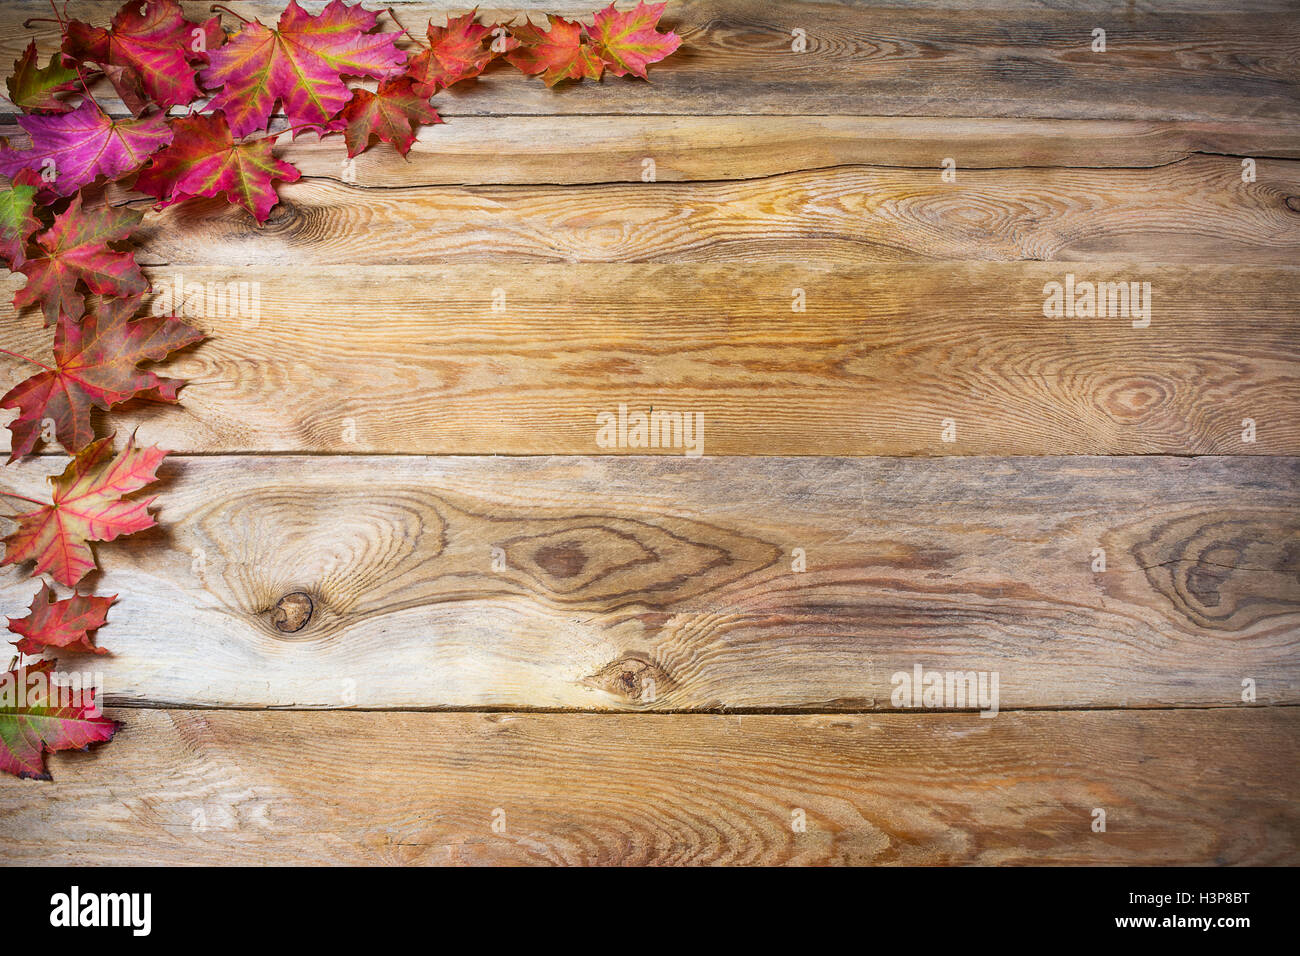 Thanksgiving Greeting With Fall Maple Leaves On Rustic Wooden Background Seasonal Vegetables And